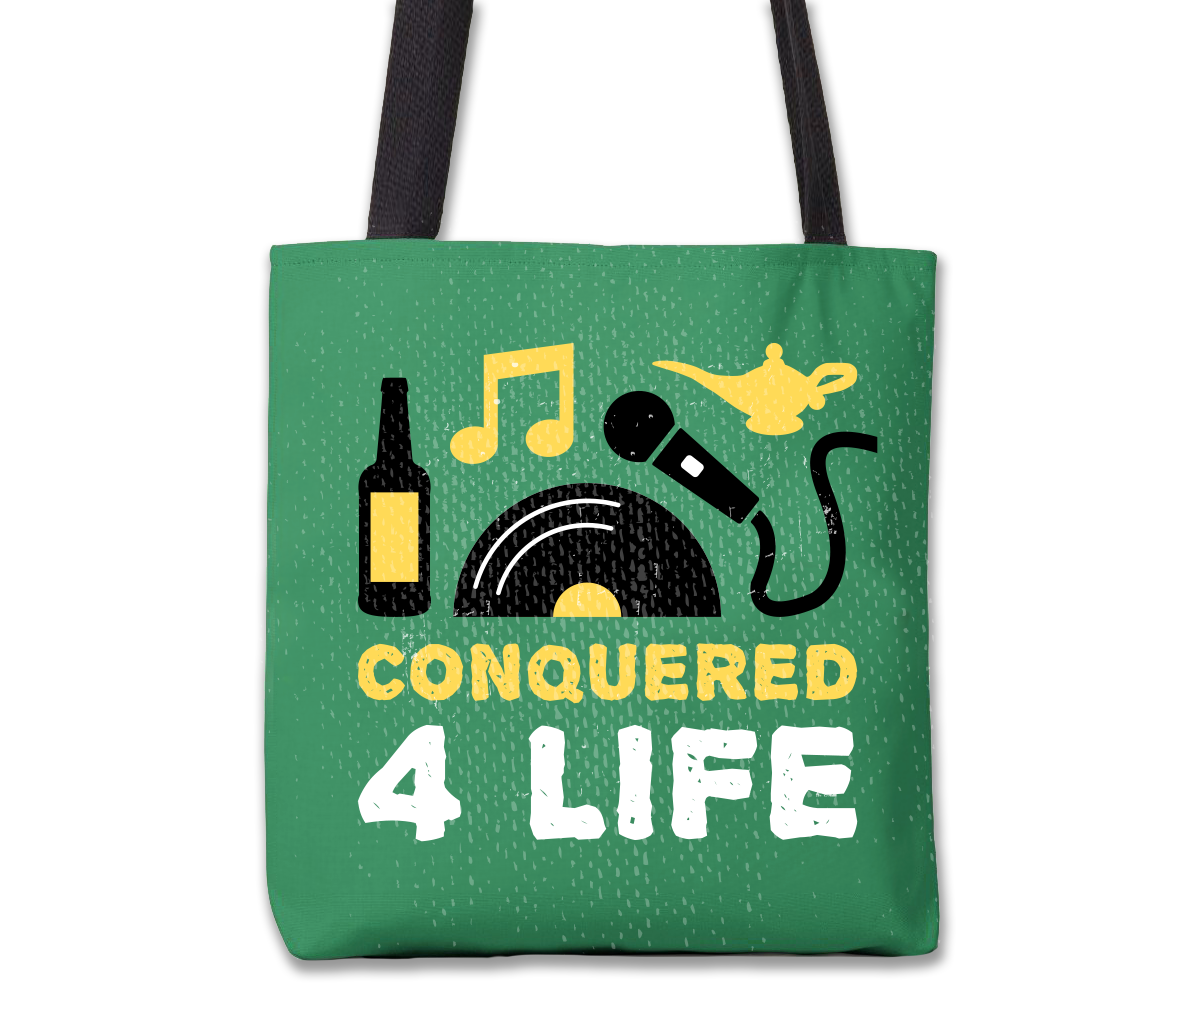 Conquered_4_Life_tote_bag_1200x1200_cropped.png